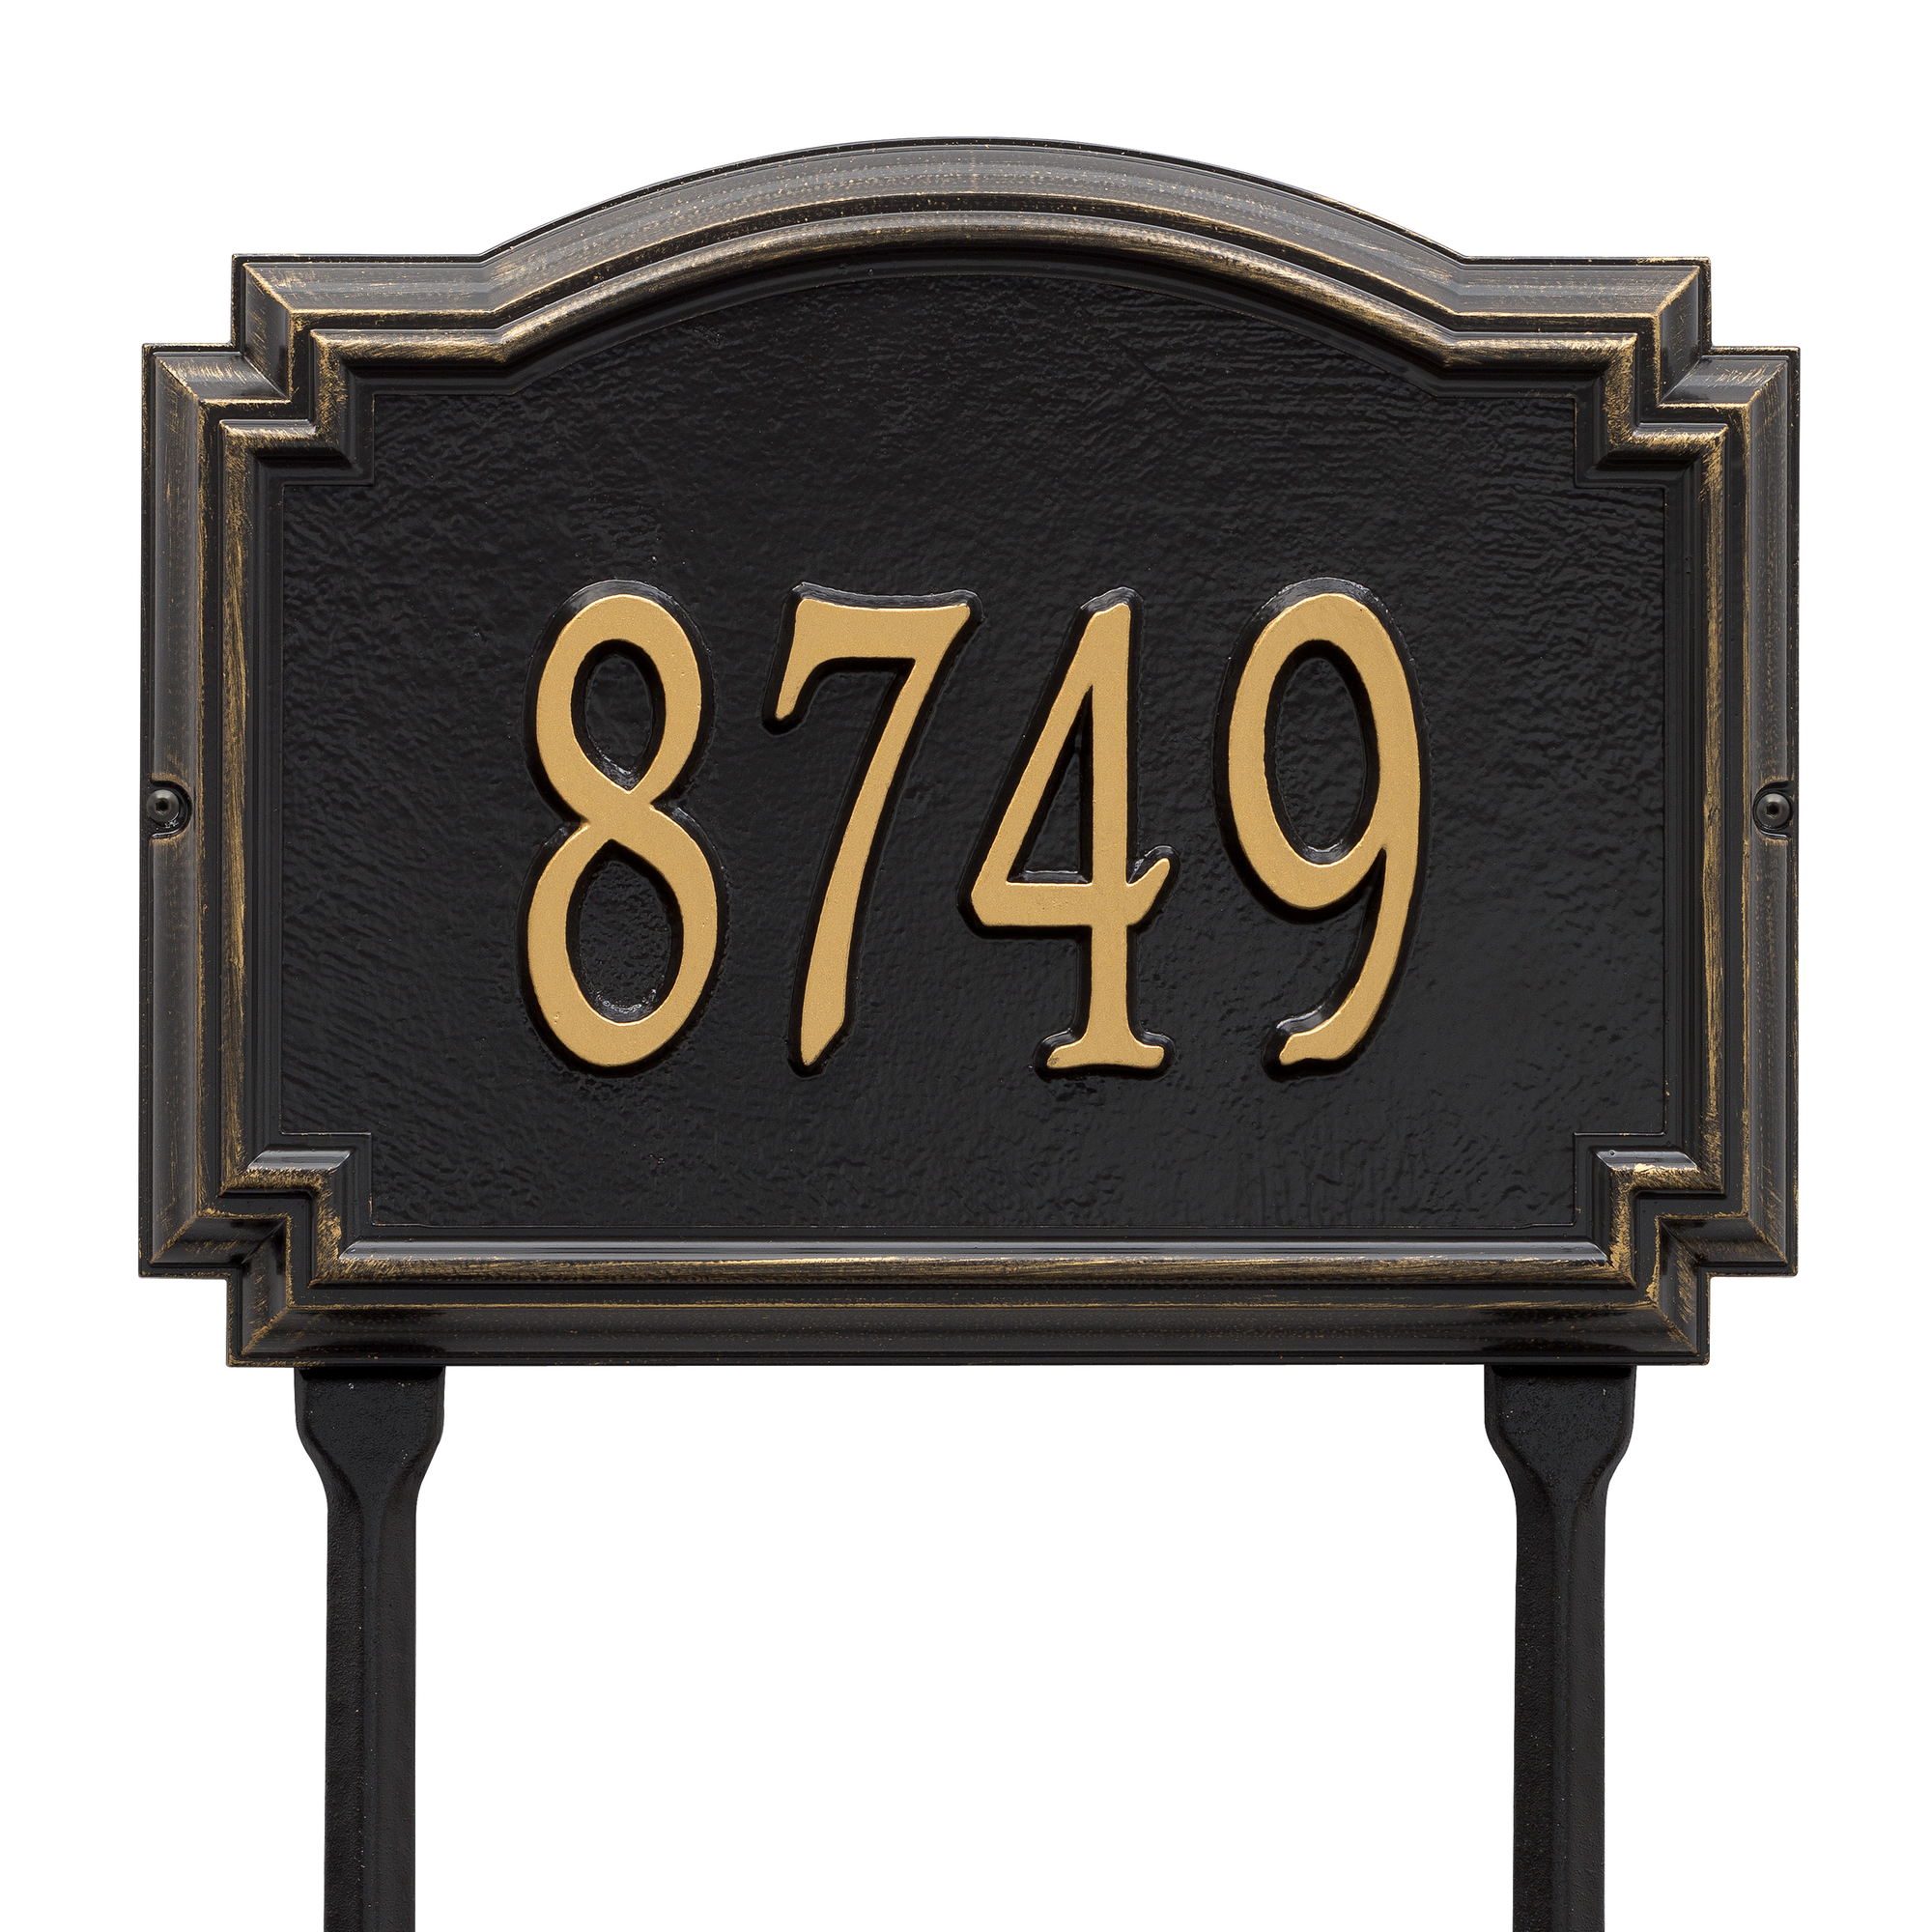 Personalized Whitehall Products Williamsburg 1-Line Standard Lawn Plaque in Black/Gold